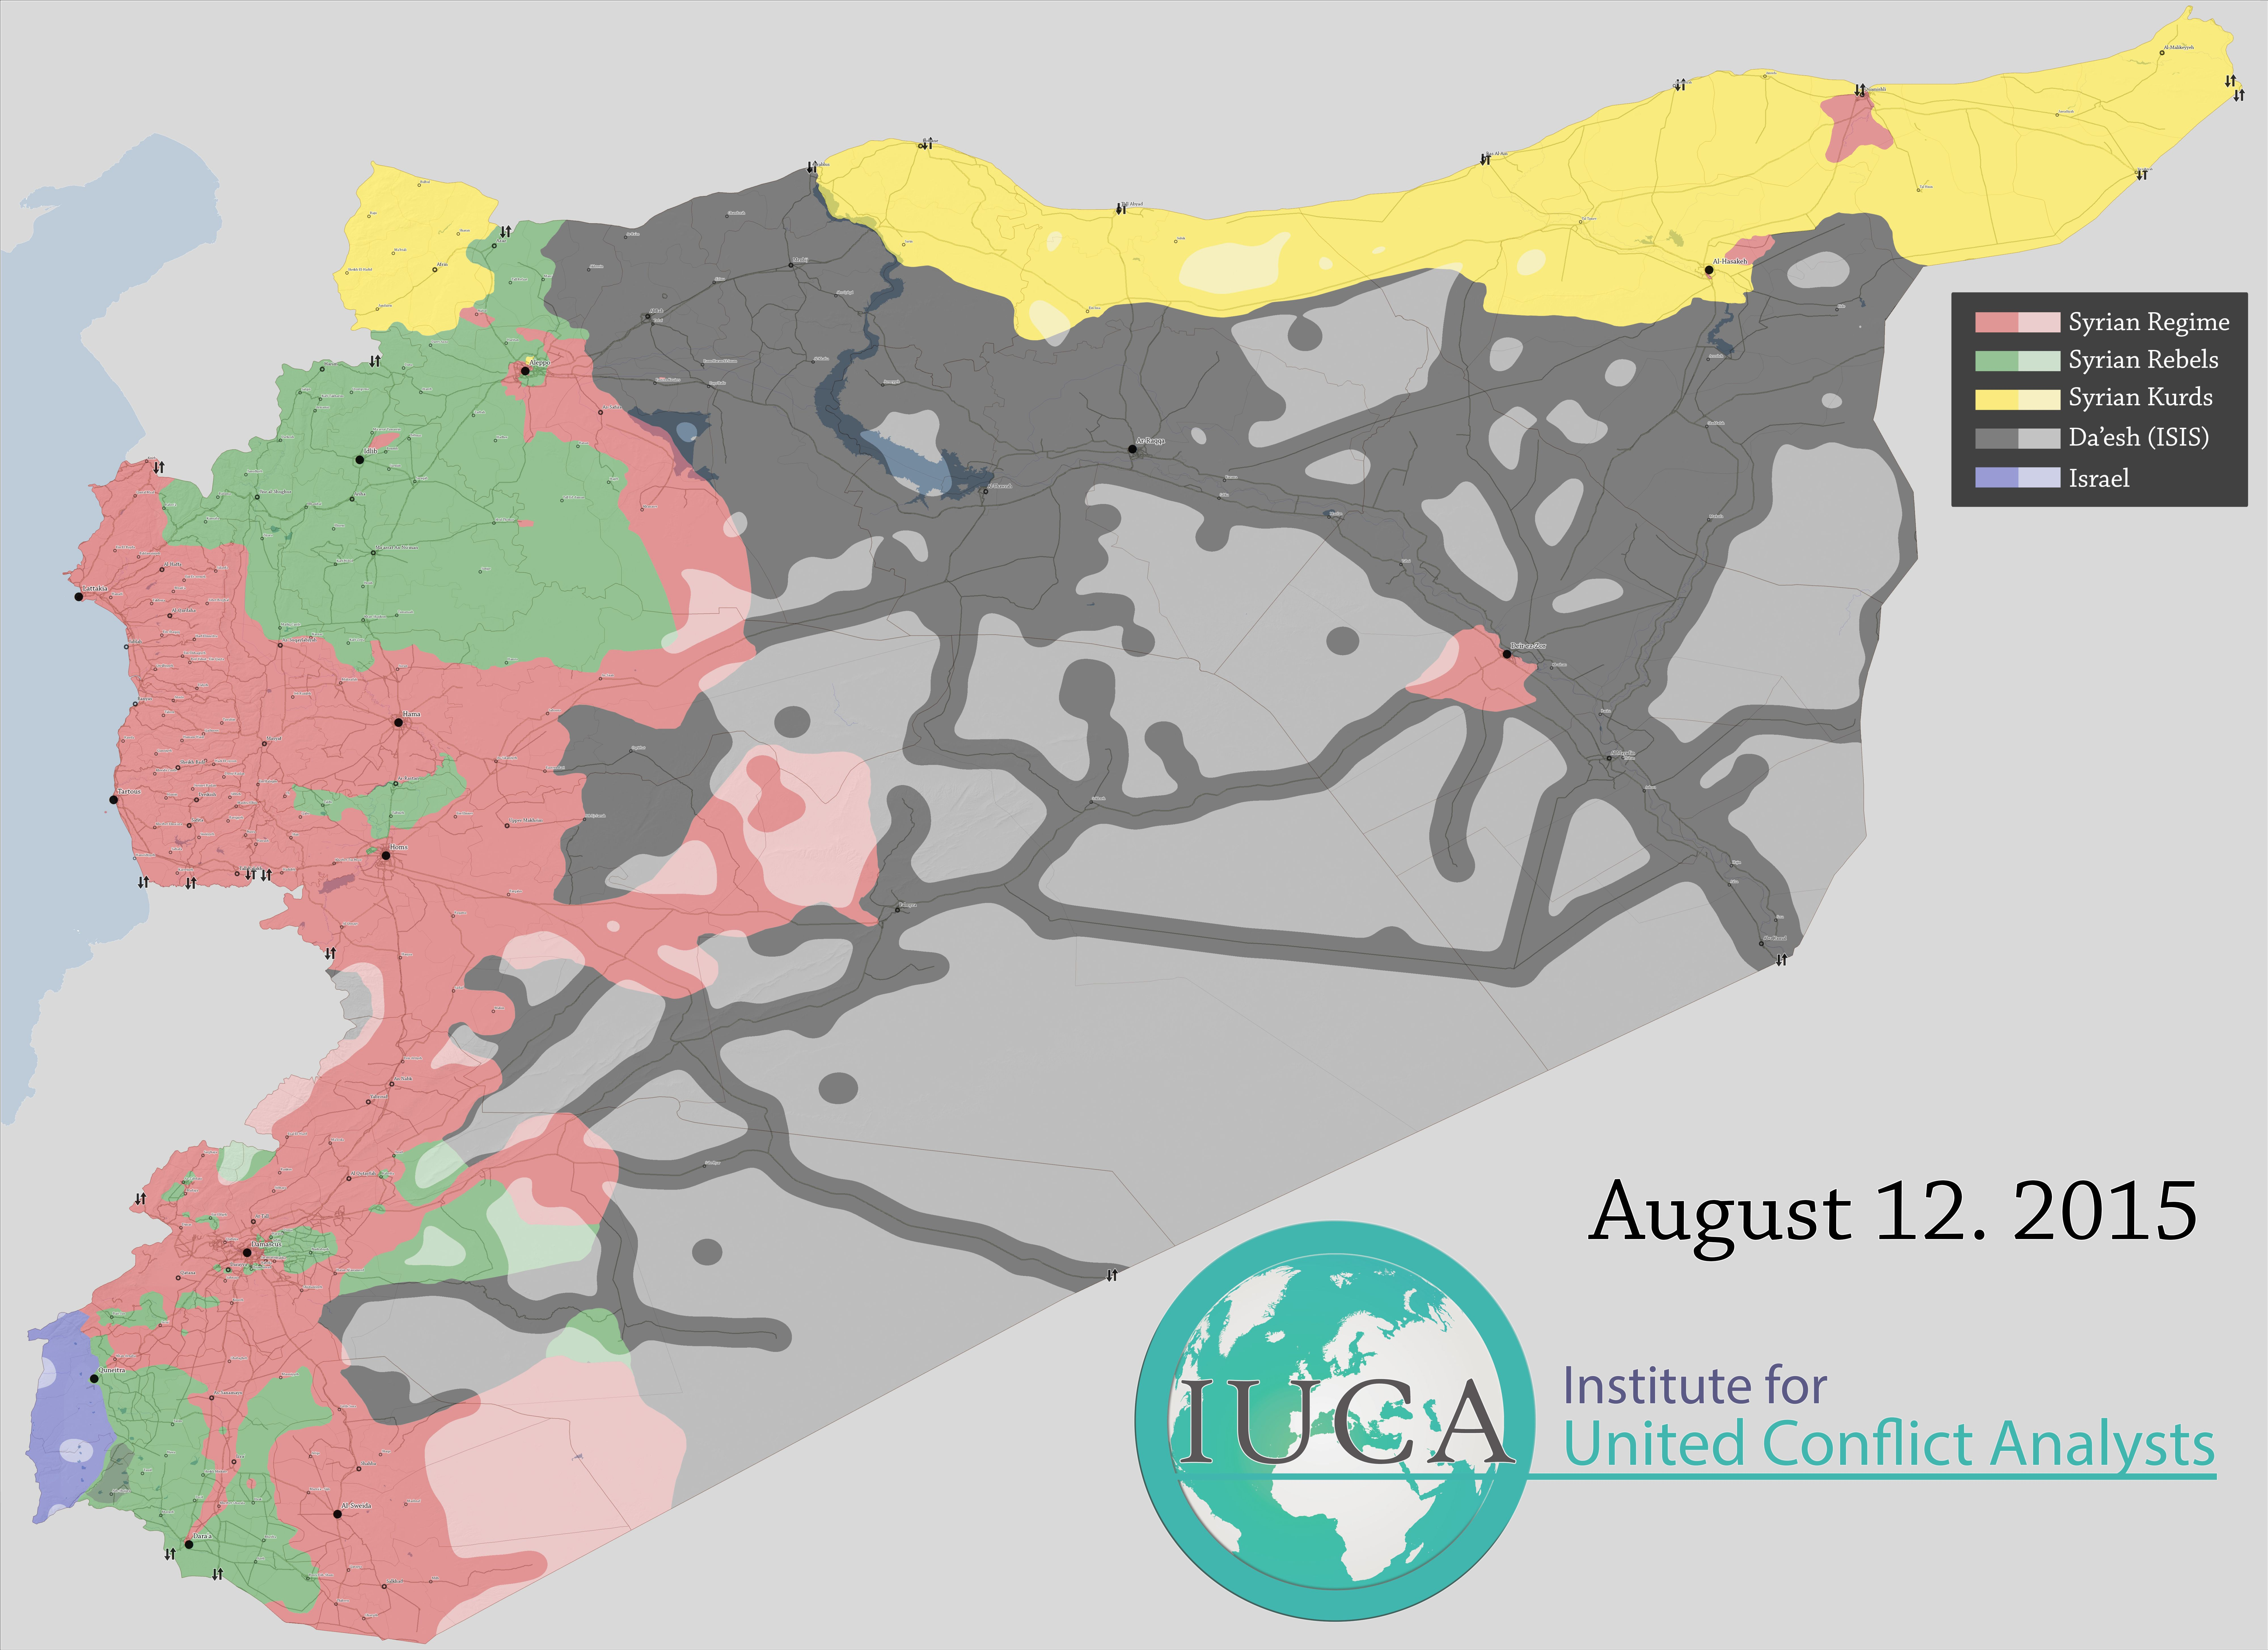 Pin by azmar on Maps of Daesh | Map, Russian states, Syria